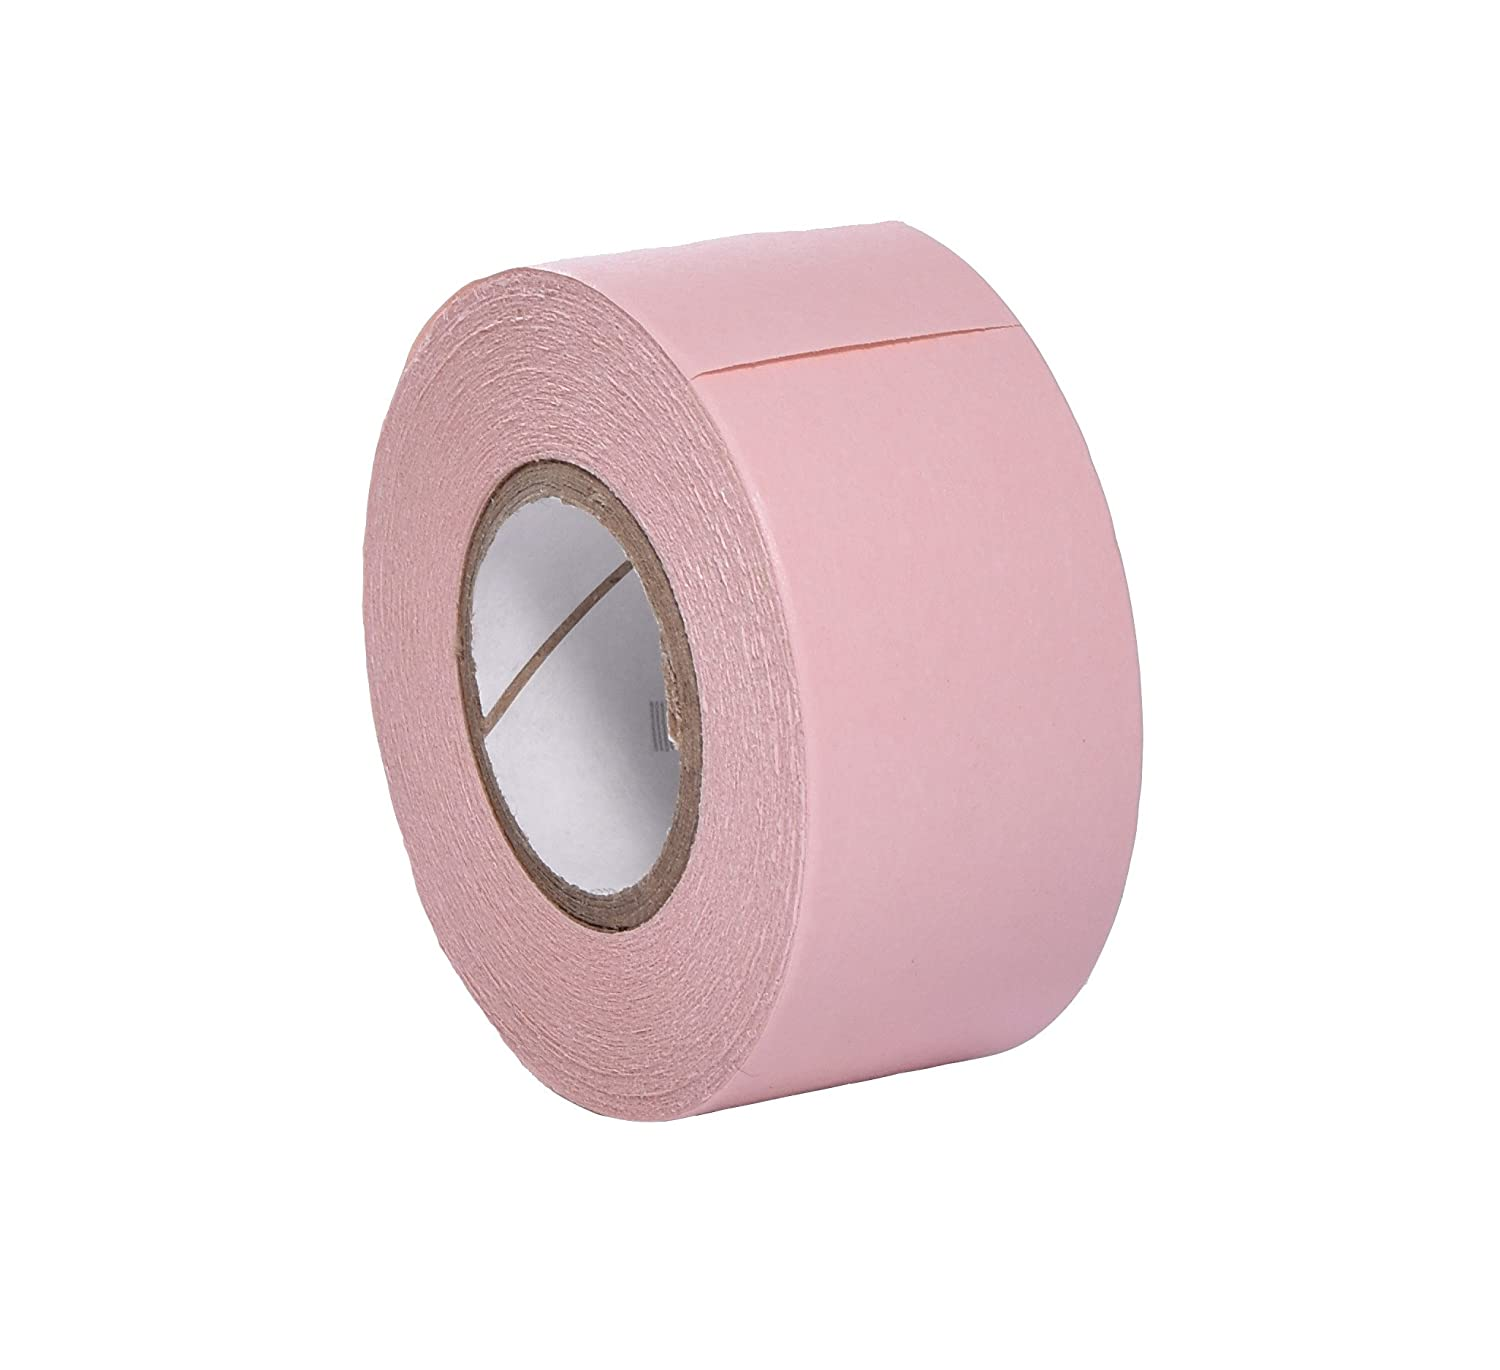 Camlab 1176868 Labelling Tape, 1' Wide, 500' (12.7 m) Long, Pink 1 Wide 500 (12.7 m) Long